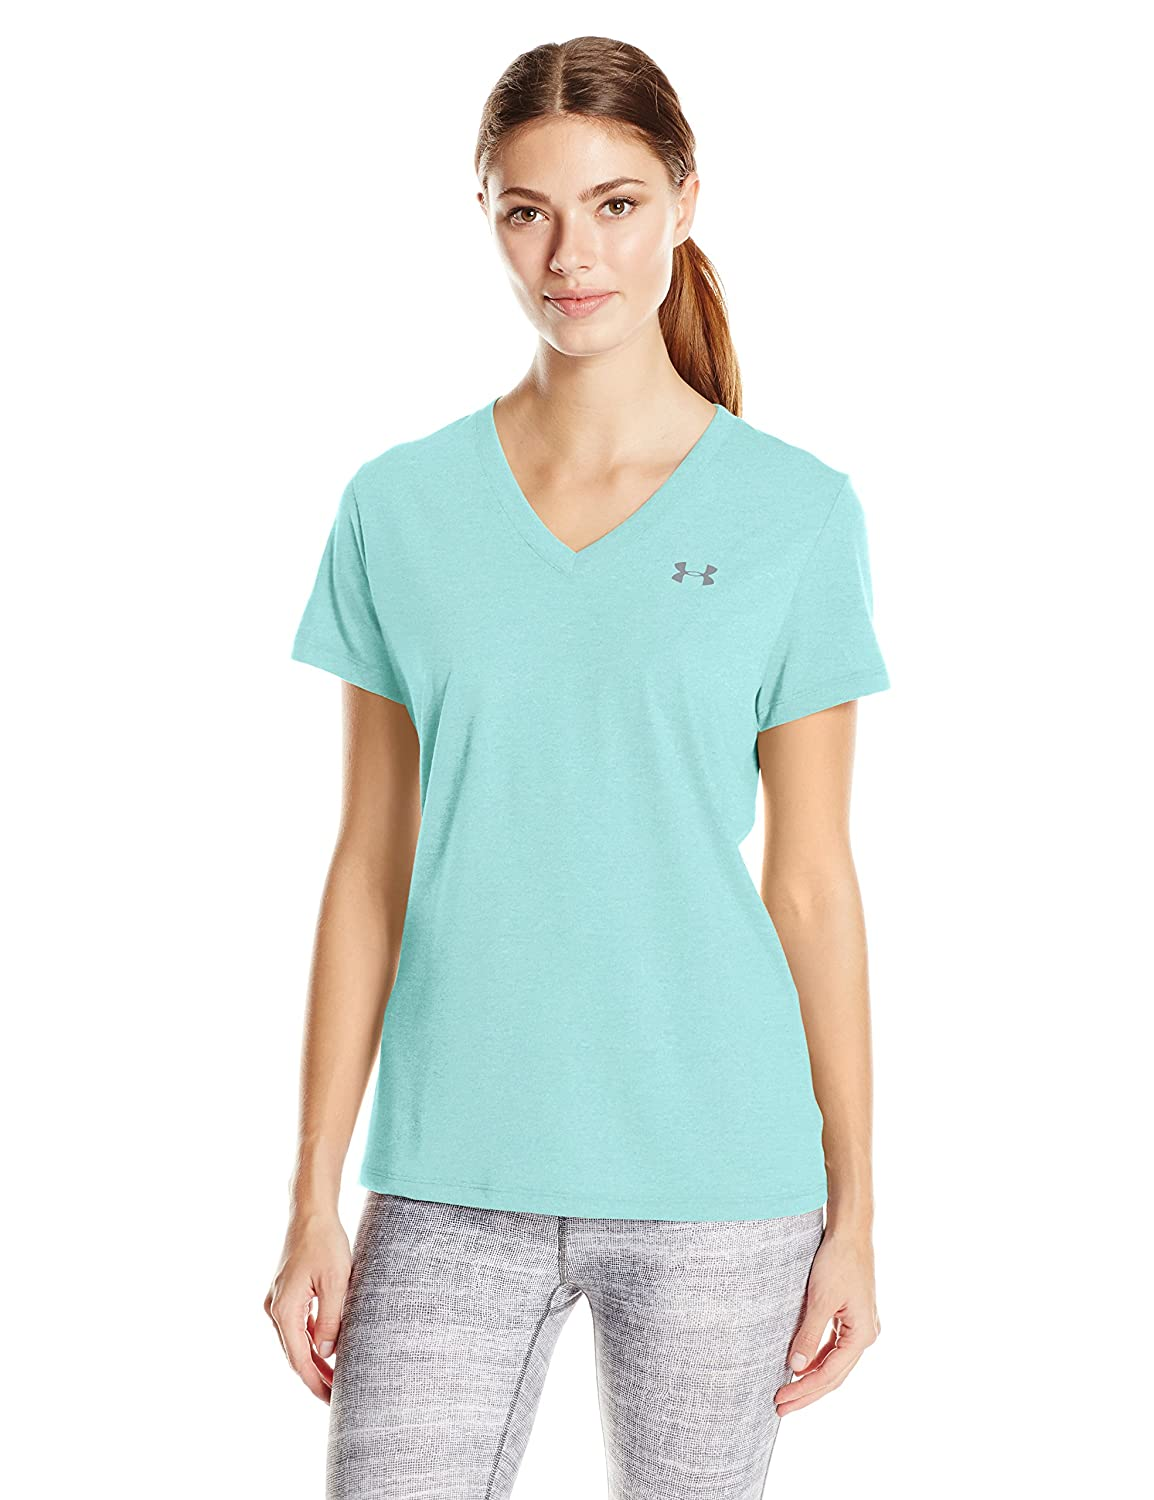 Under Armour Women's Threadborne Train Twist V-Neck Top Under Armour Apparel 1289650